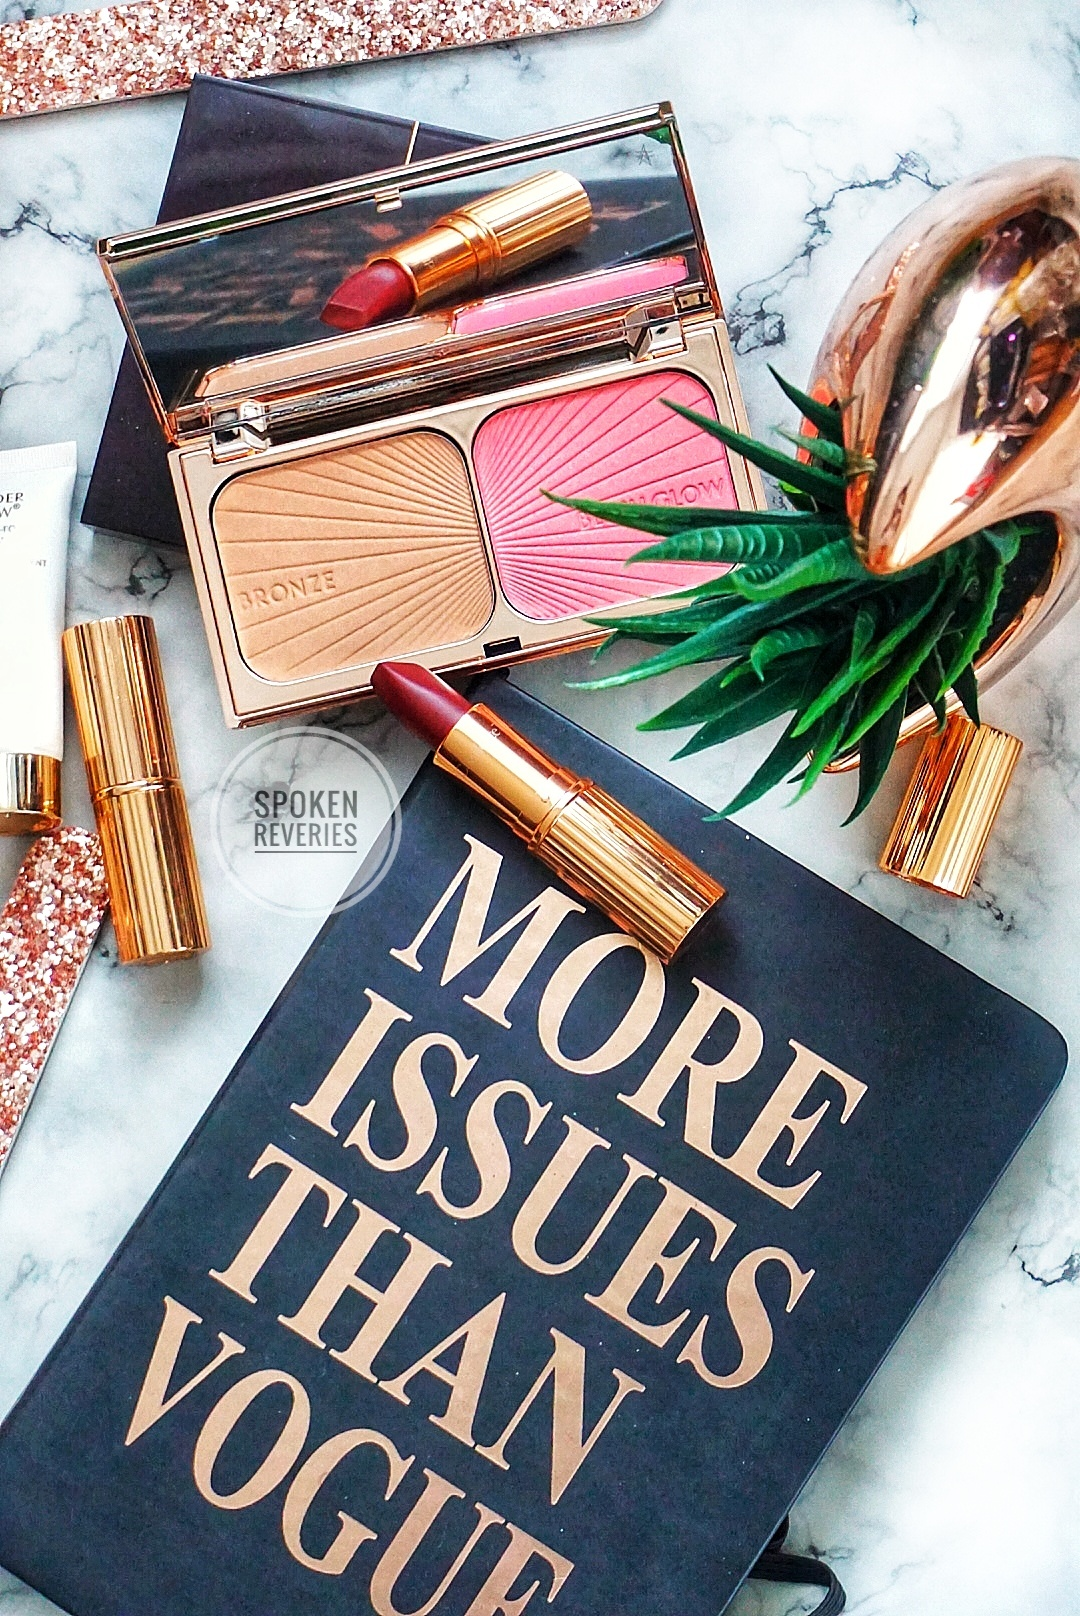 Charlotte Tilbury Bronze and Blush Glow and Opium Noir Lipstick